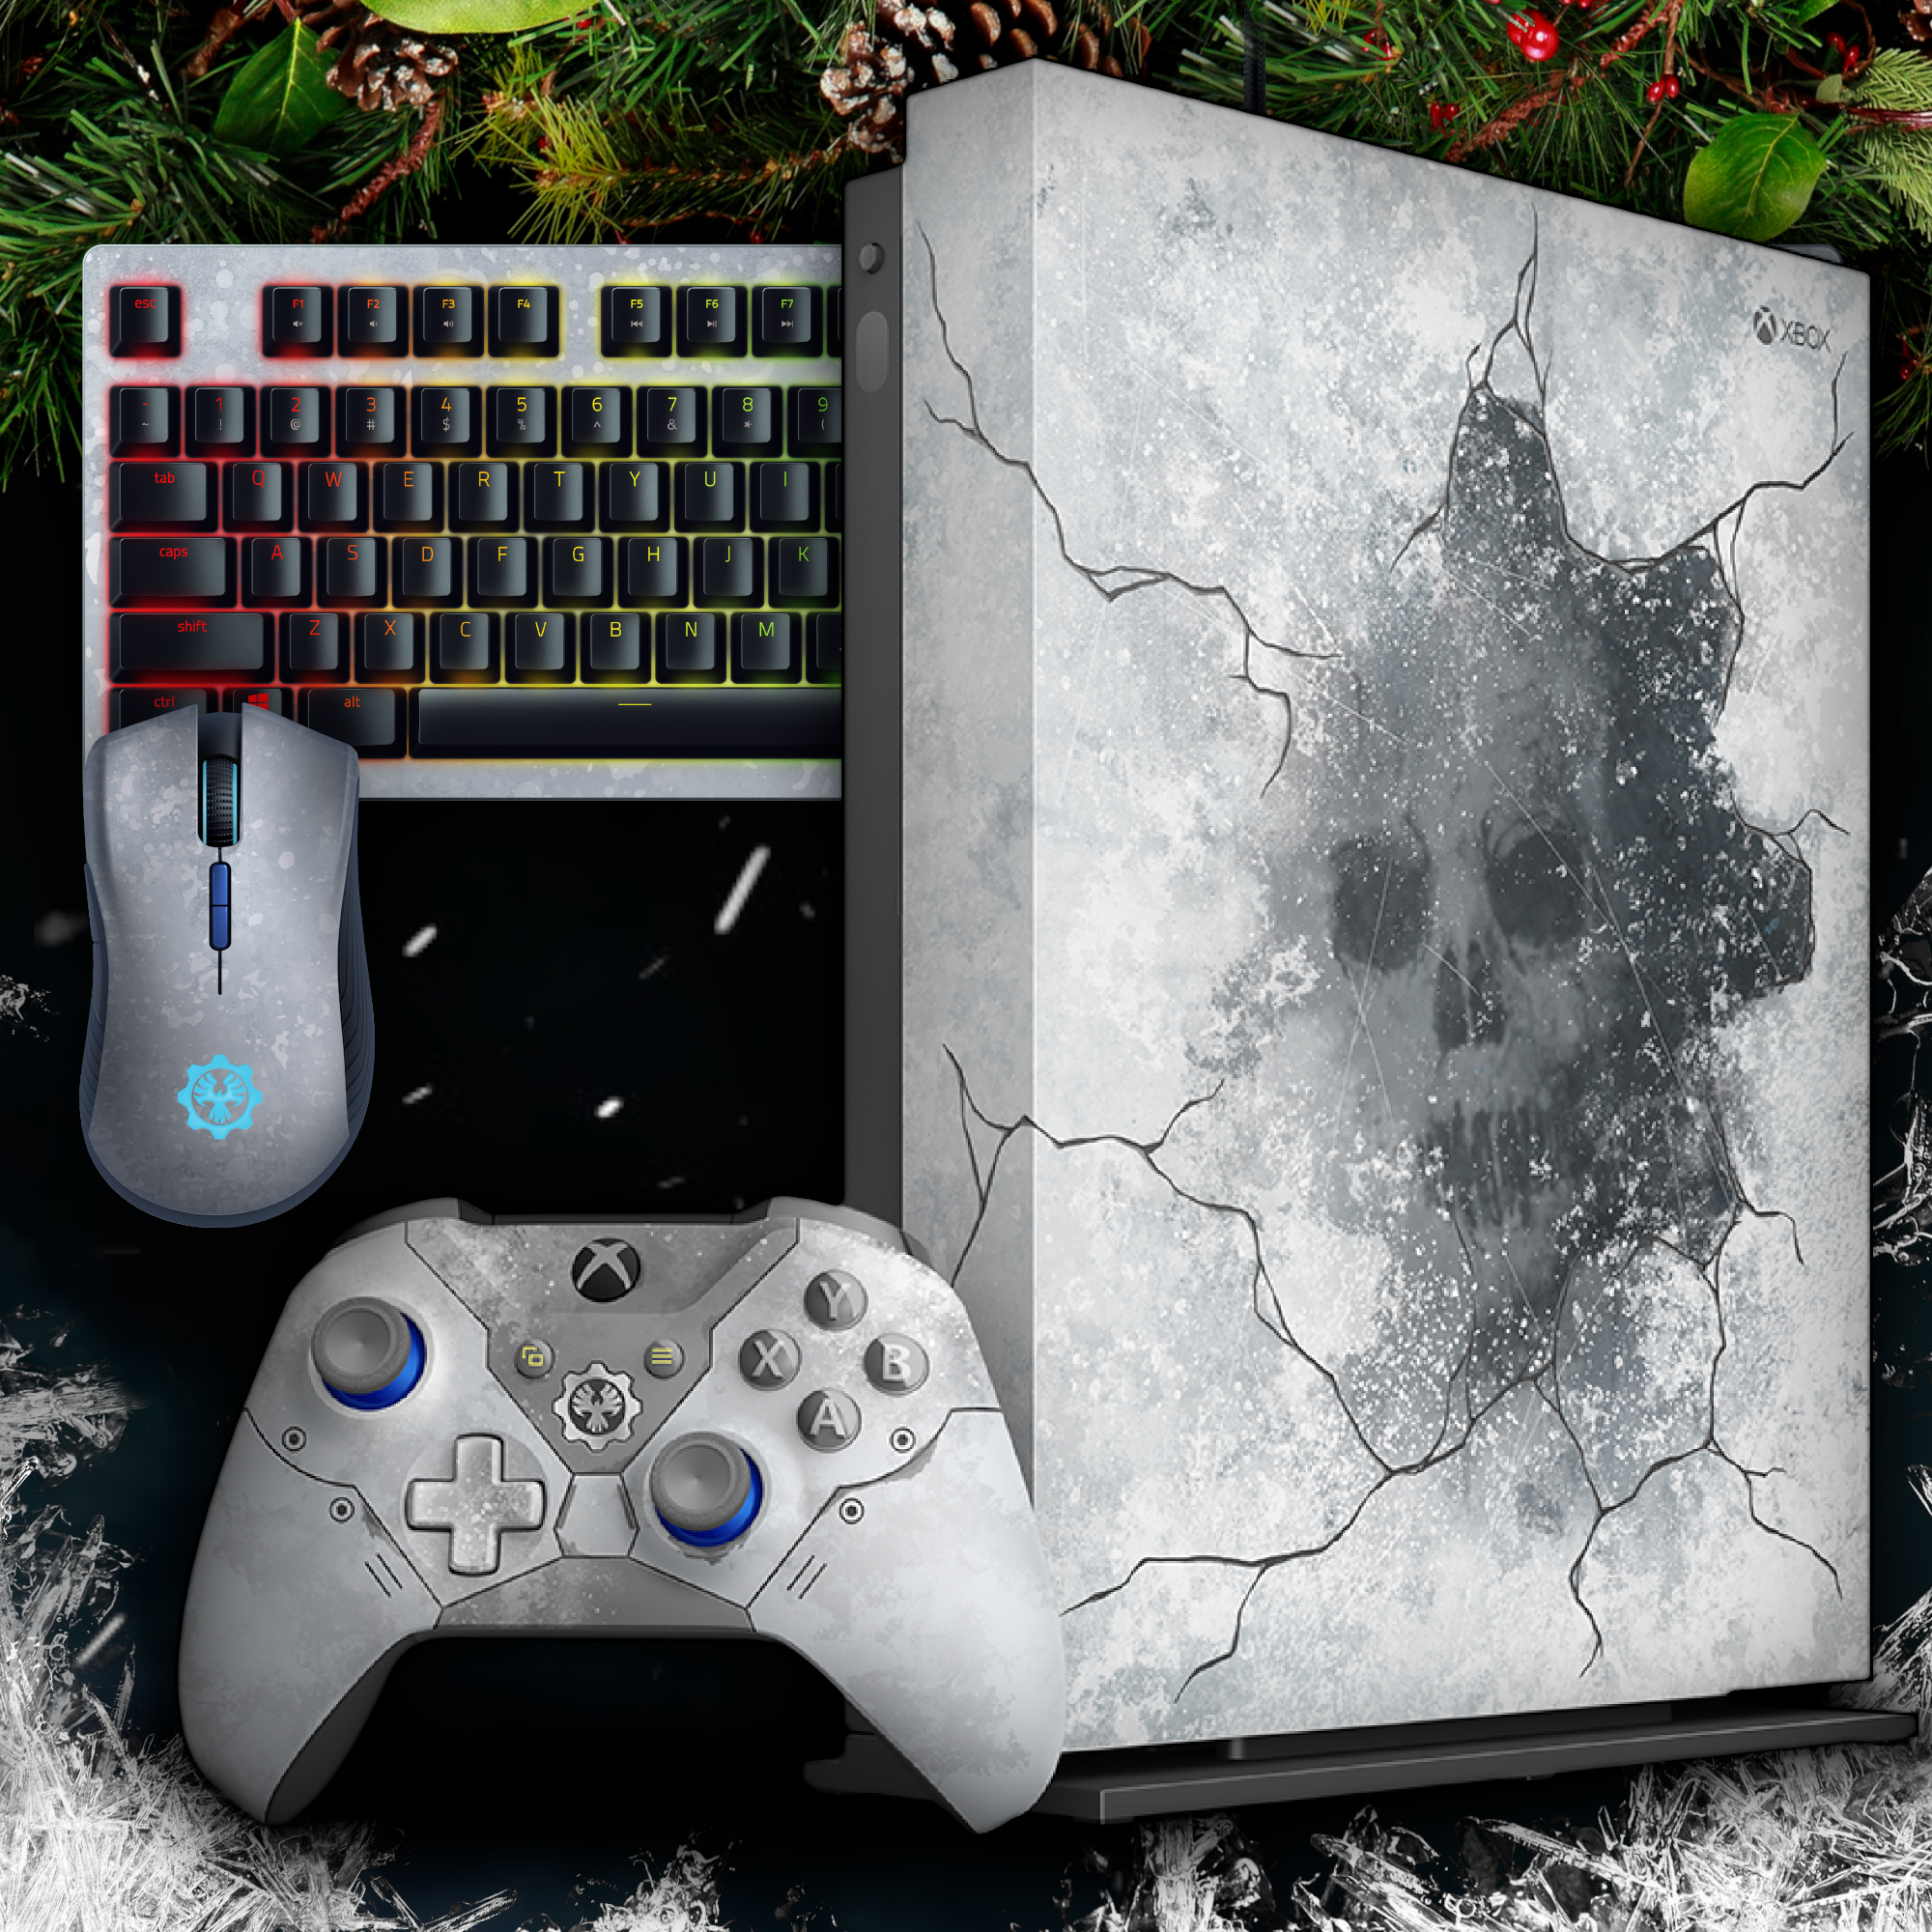 Gears 5 themed peripherals